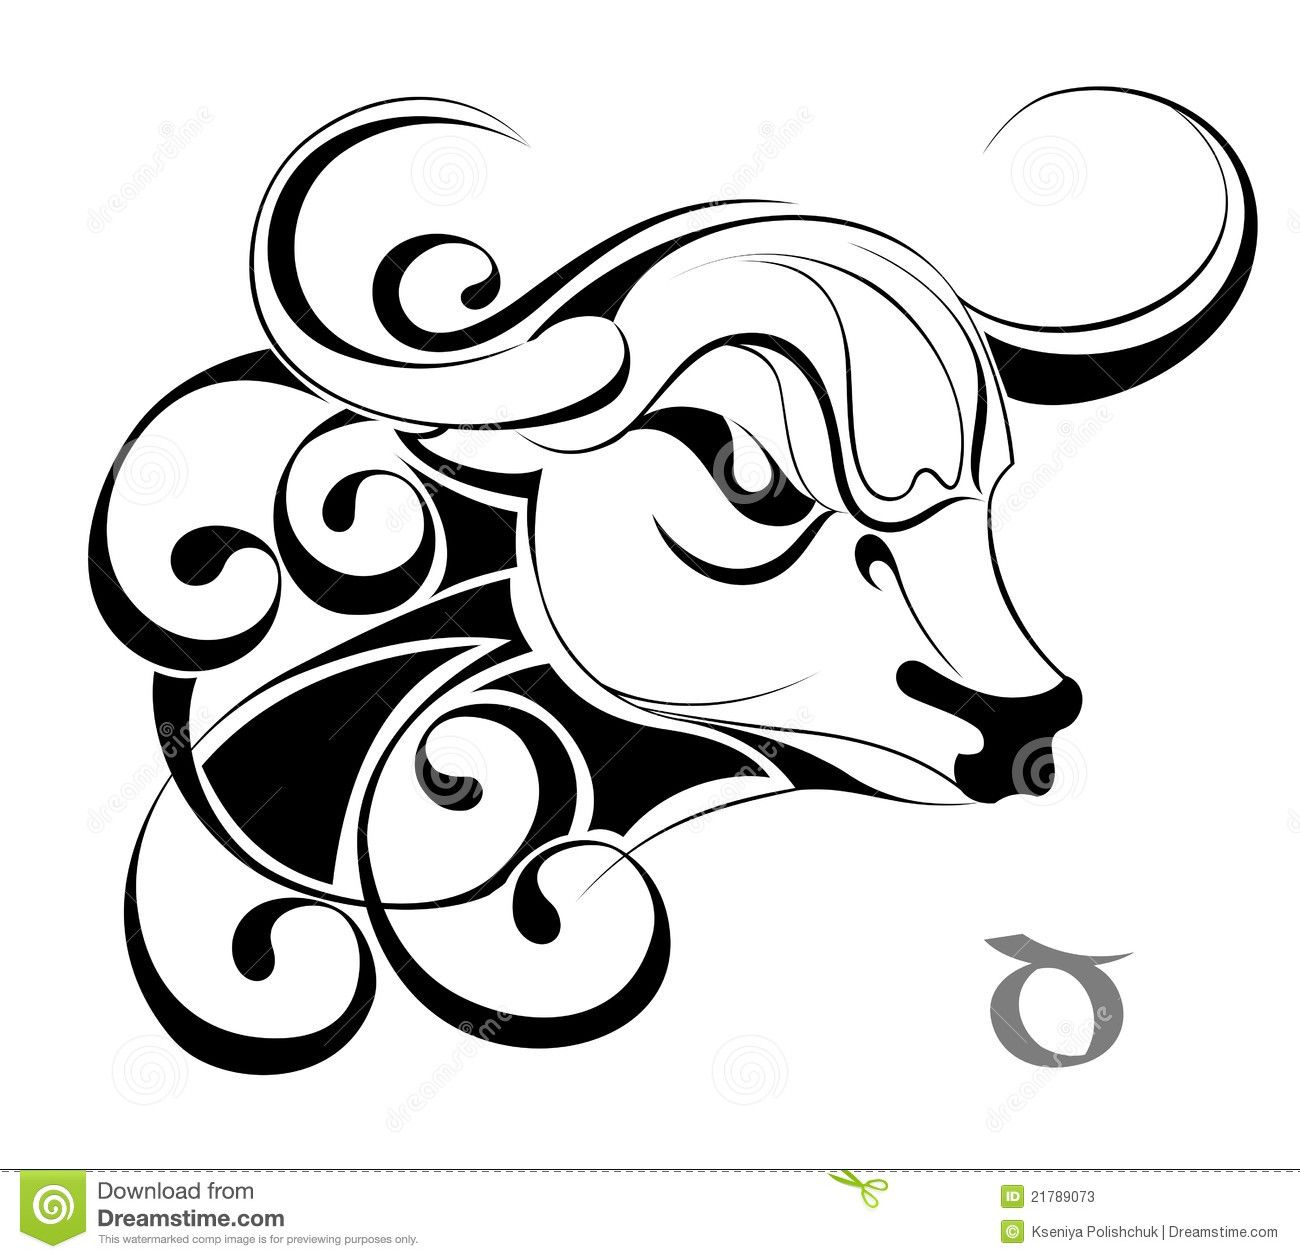 Zodiac signs taurus design download from over 67 zodiac signs taurus design download from over 67 million high quality buycottarizona